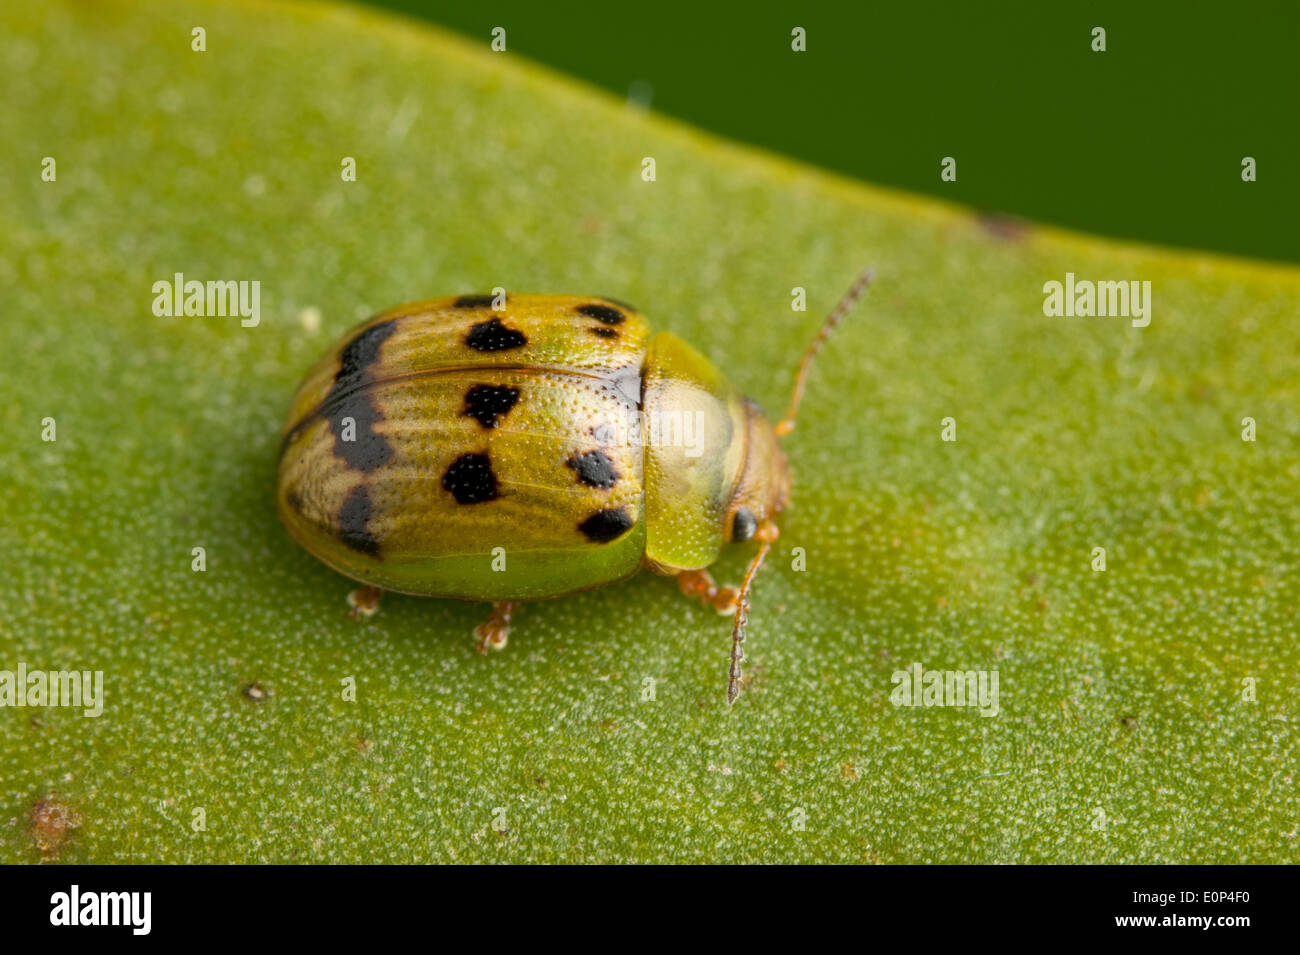 Green and gold spotted leaf beetle - Stock Image